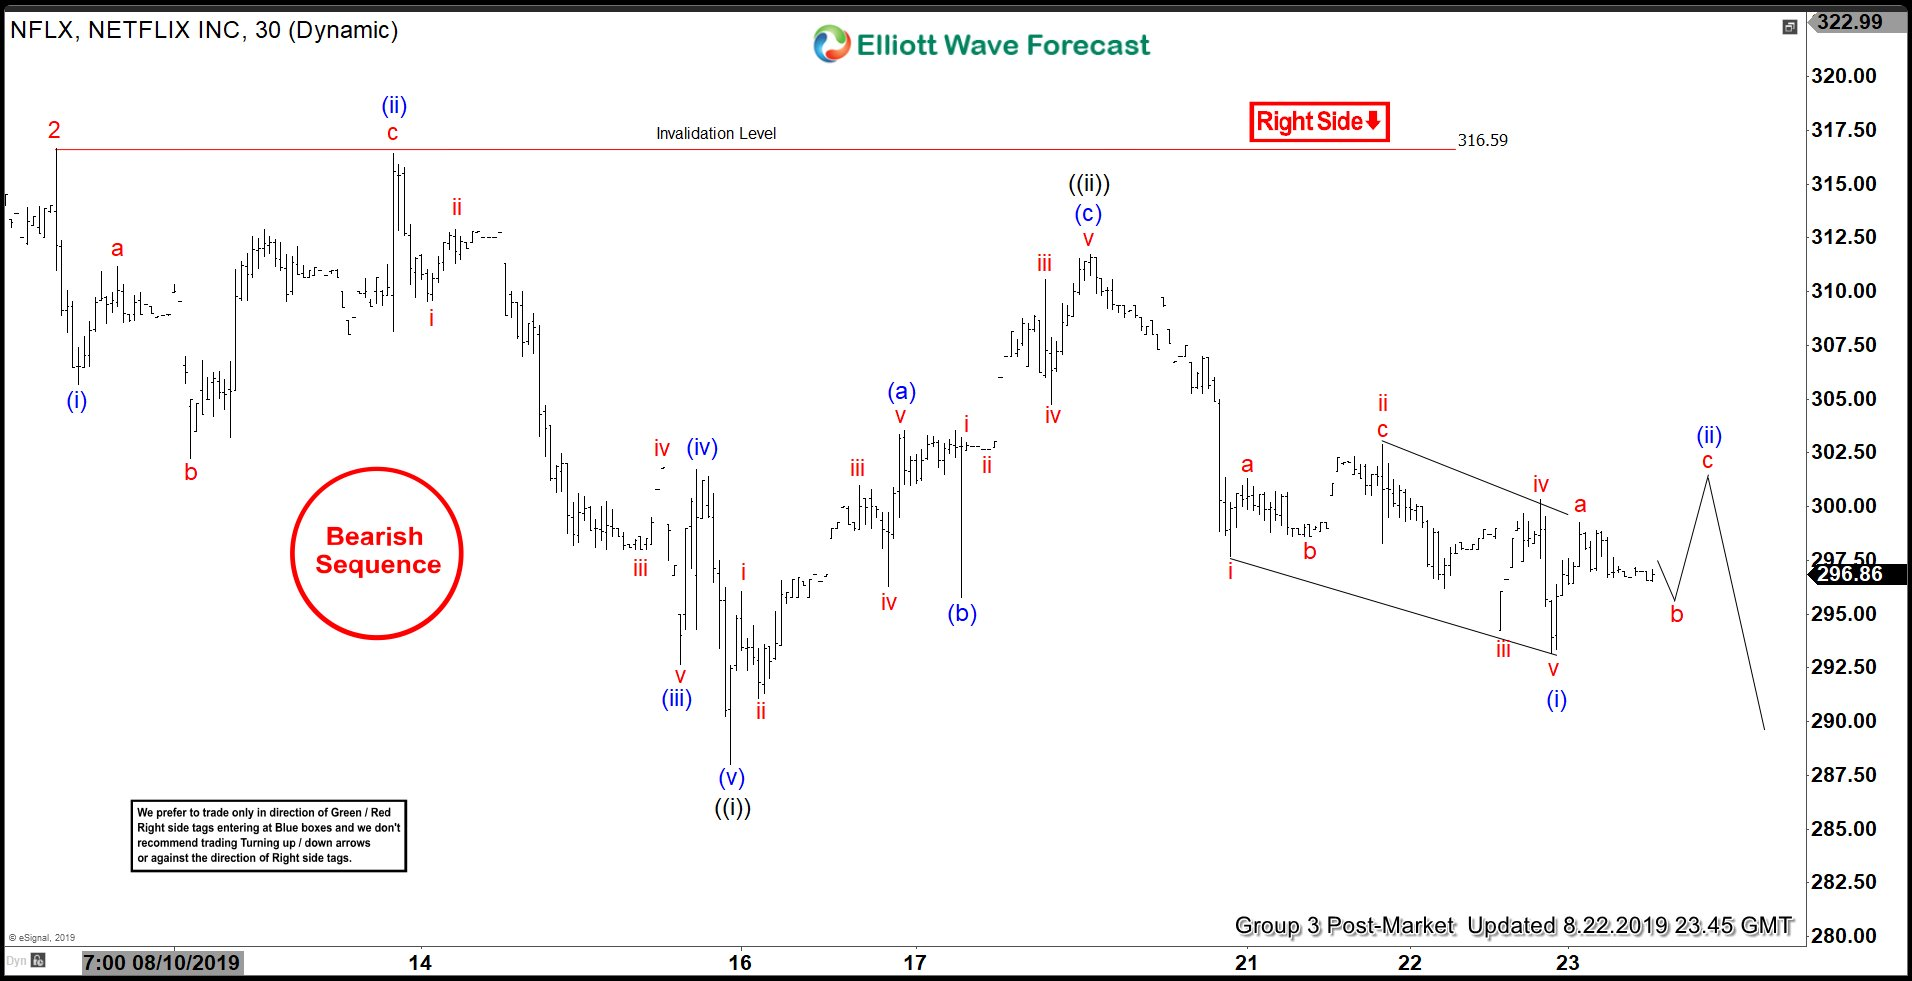 Elliott Wave View: Netflix Structure Looking Further Downside